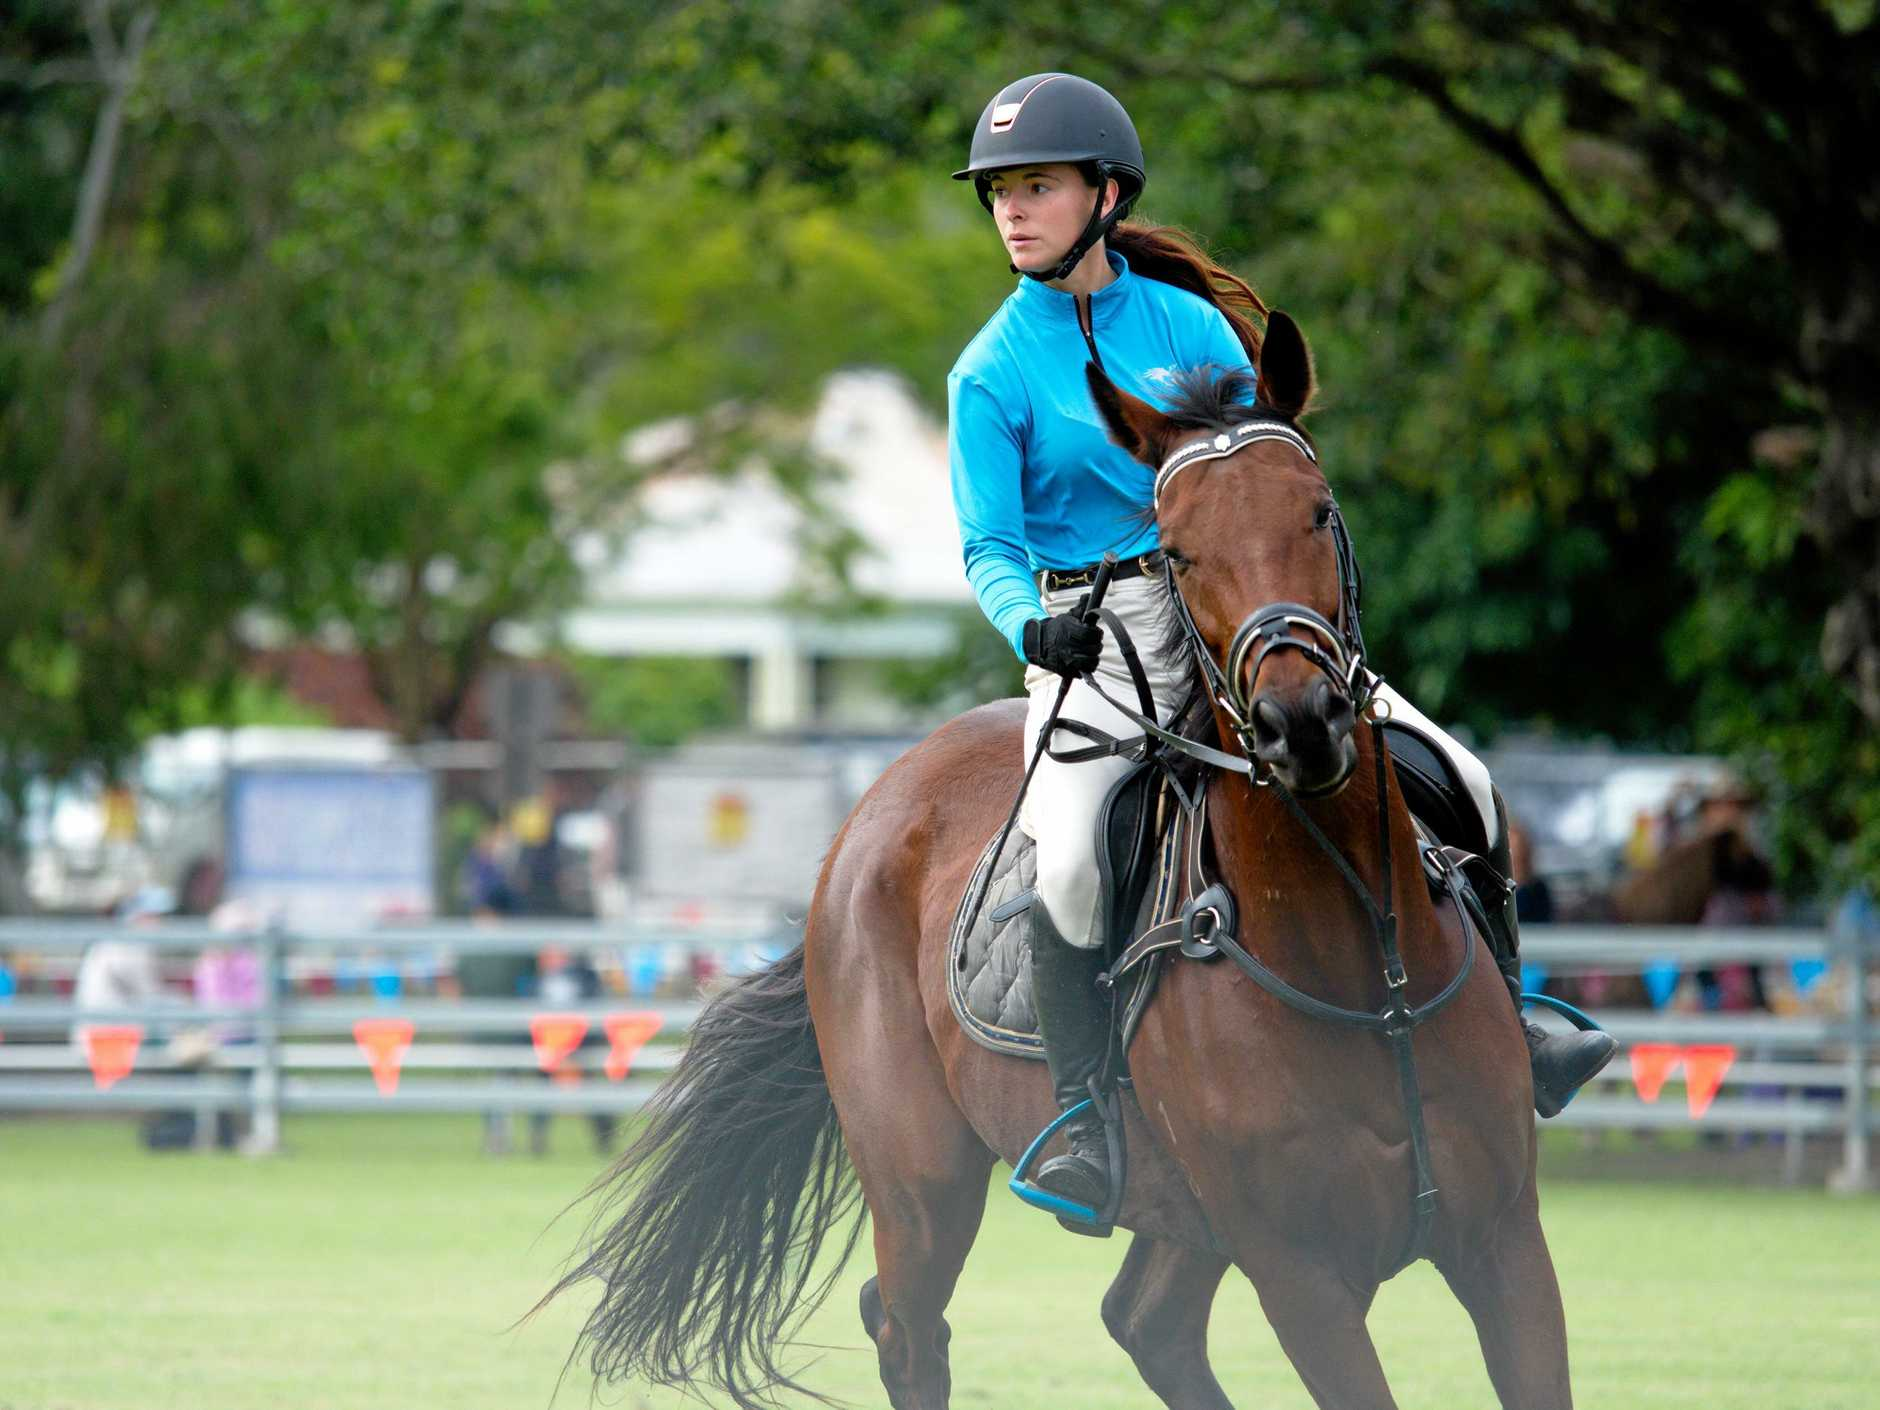 Abigail Lee in the main show ring during equestrian competition at the Pioneer Valley Show.